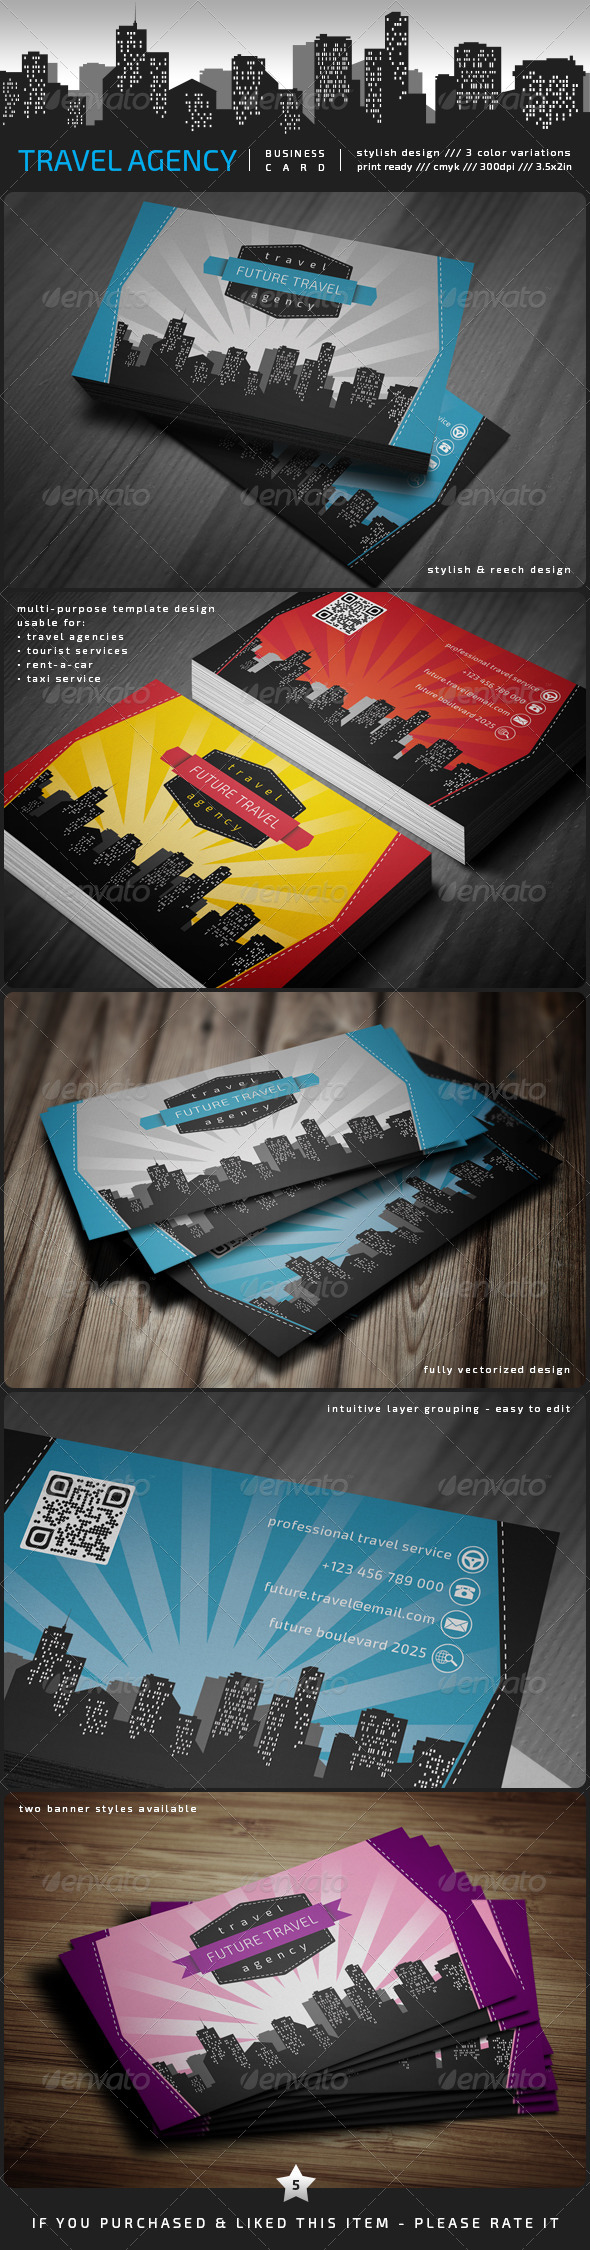 Travel Agency Business Card - Corporate Business Cards